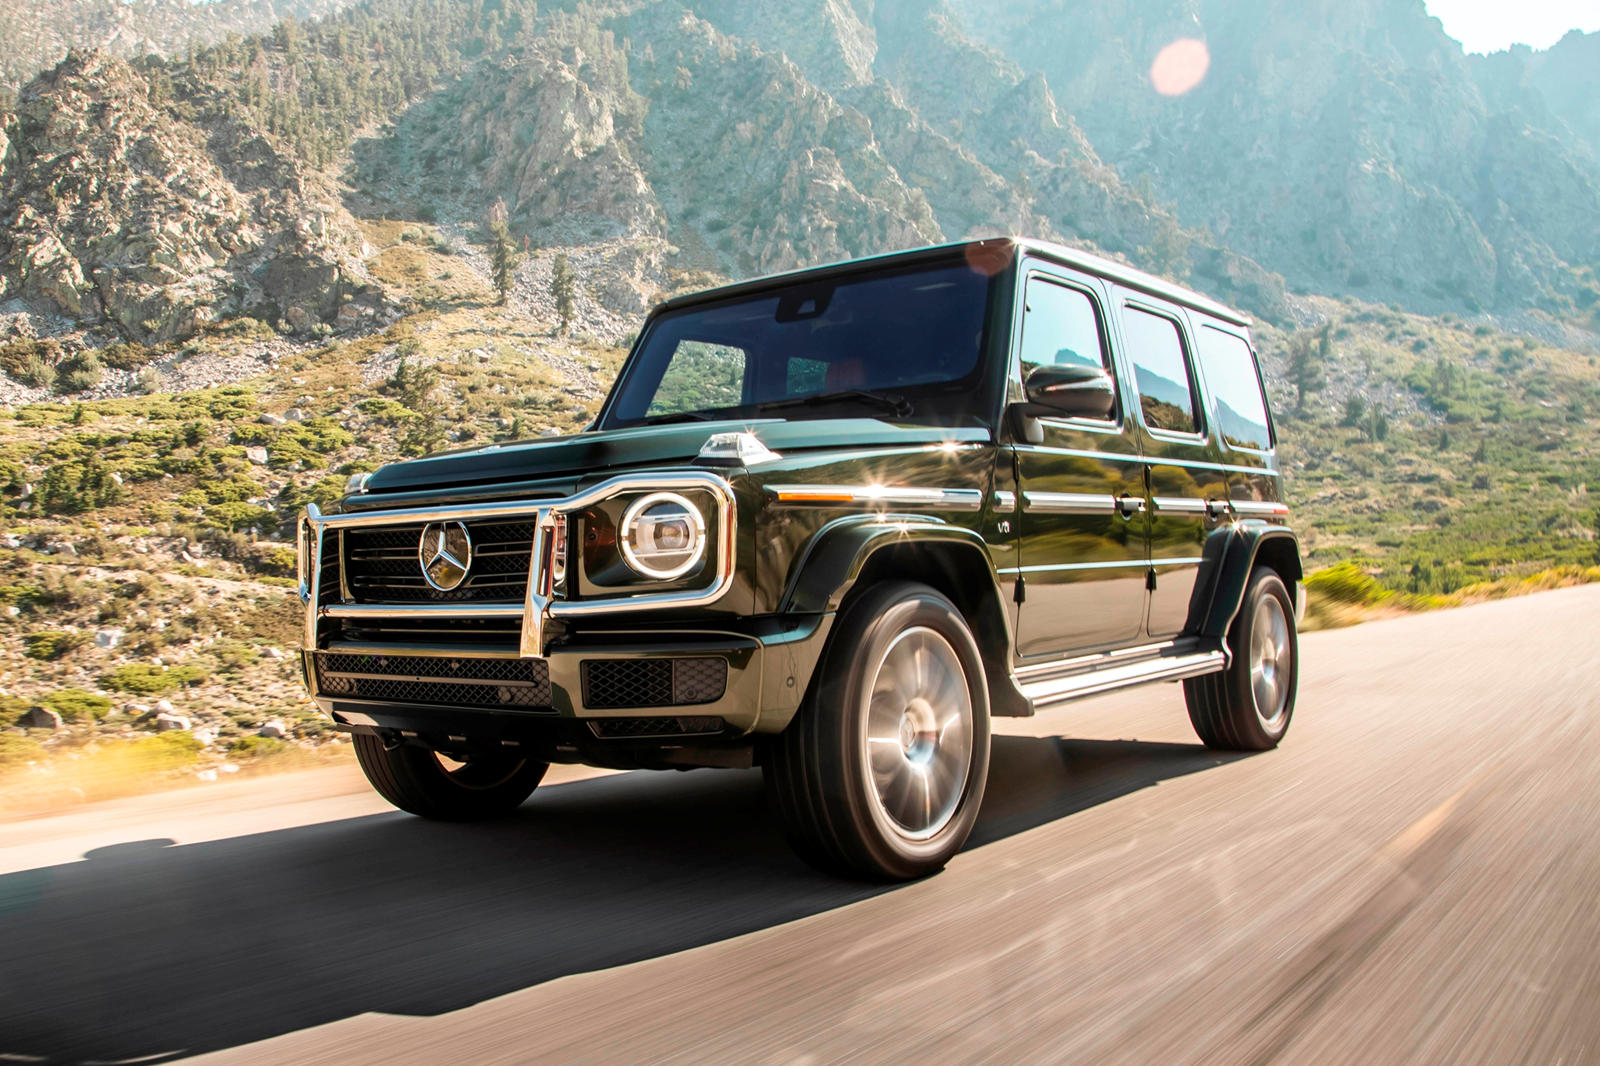 2021 Mercedes Benz G Class Review Trims Specs Price New Interior Features Exterior Design And Specifications Carbuzz